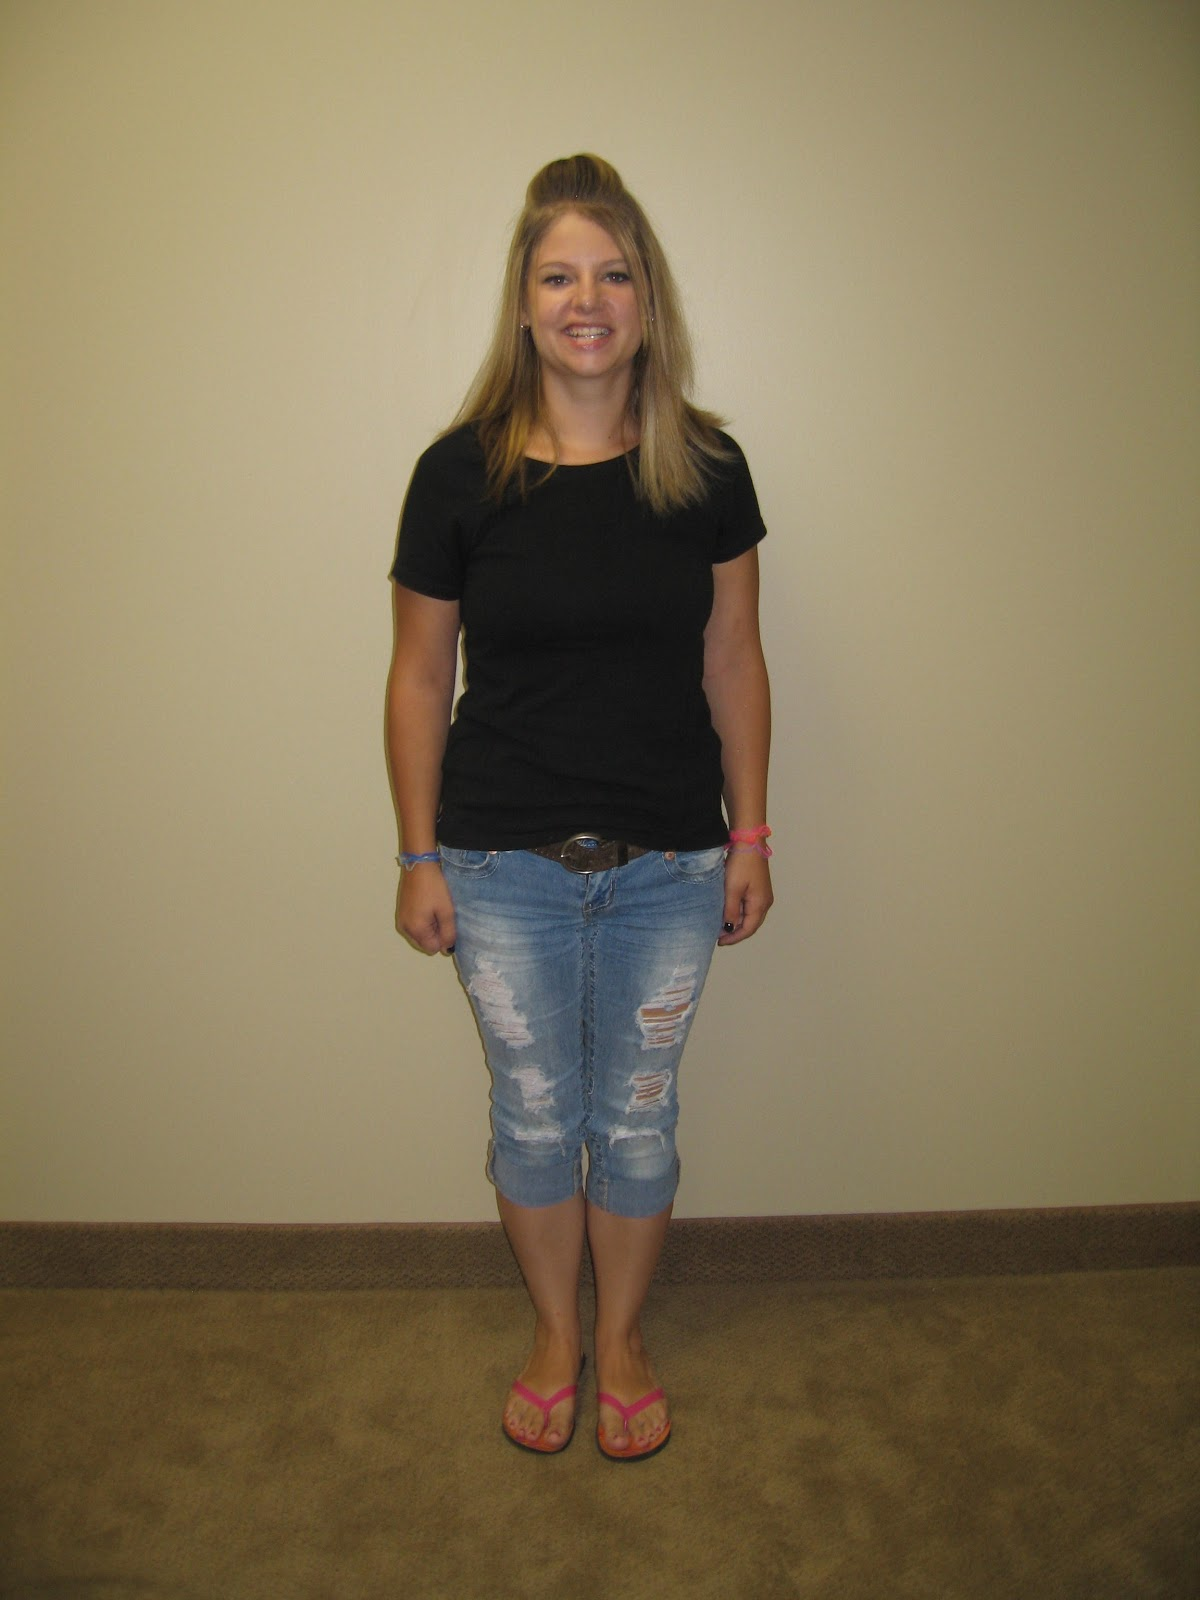 Jill's HCG 1234 Weightloss Journey